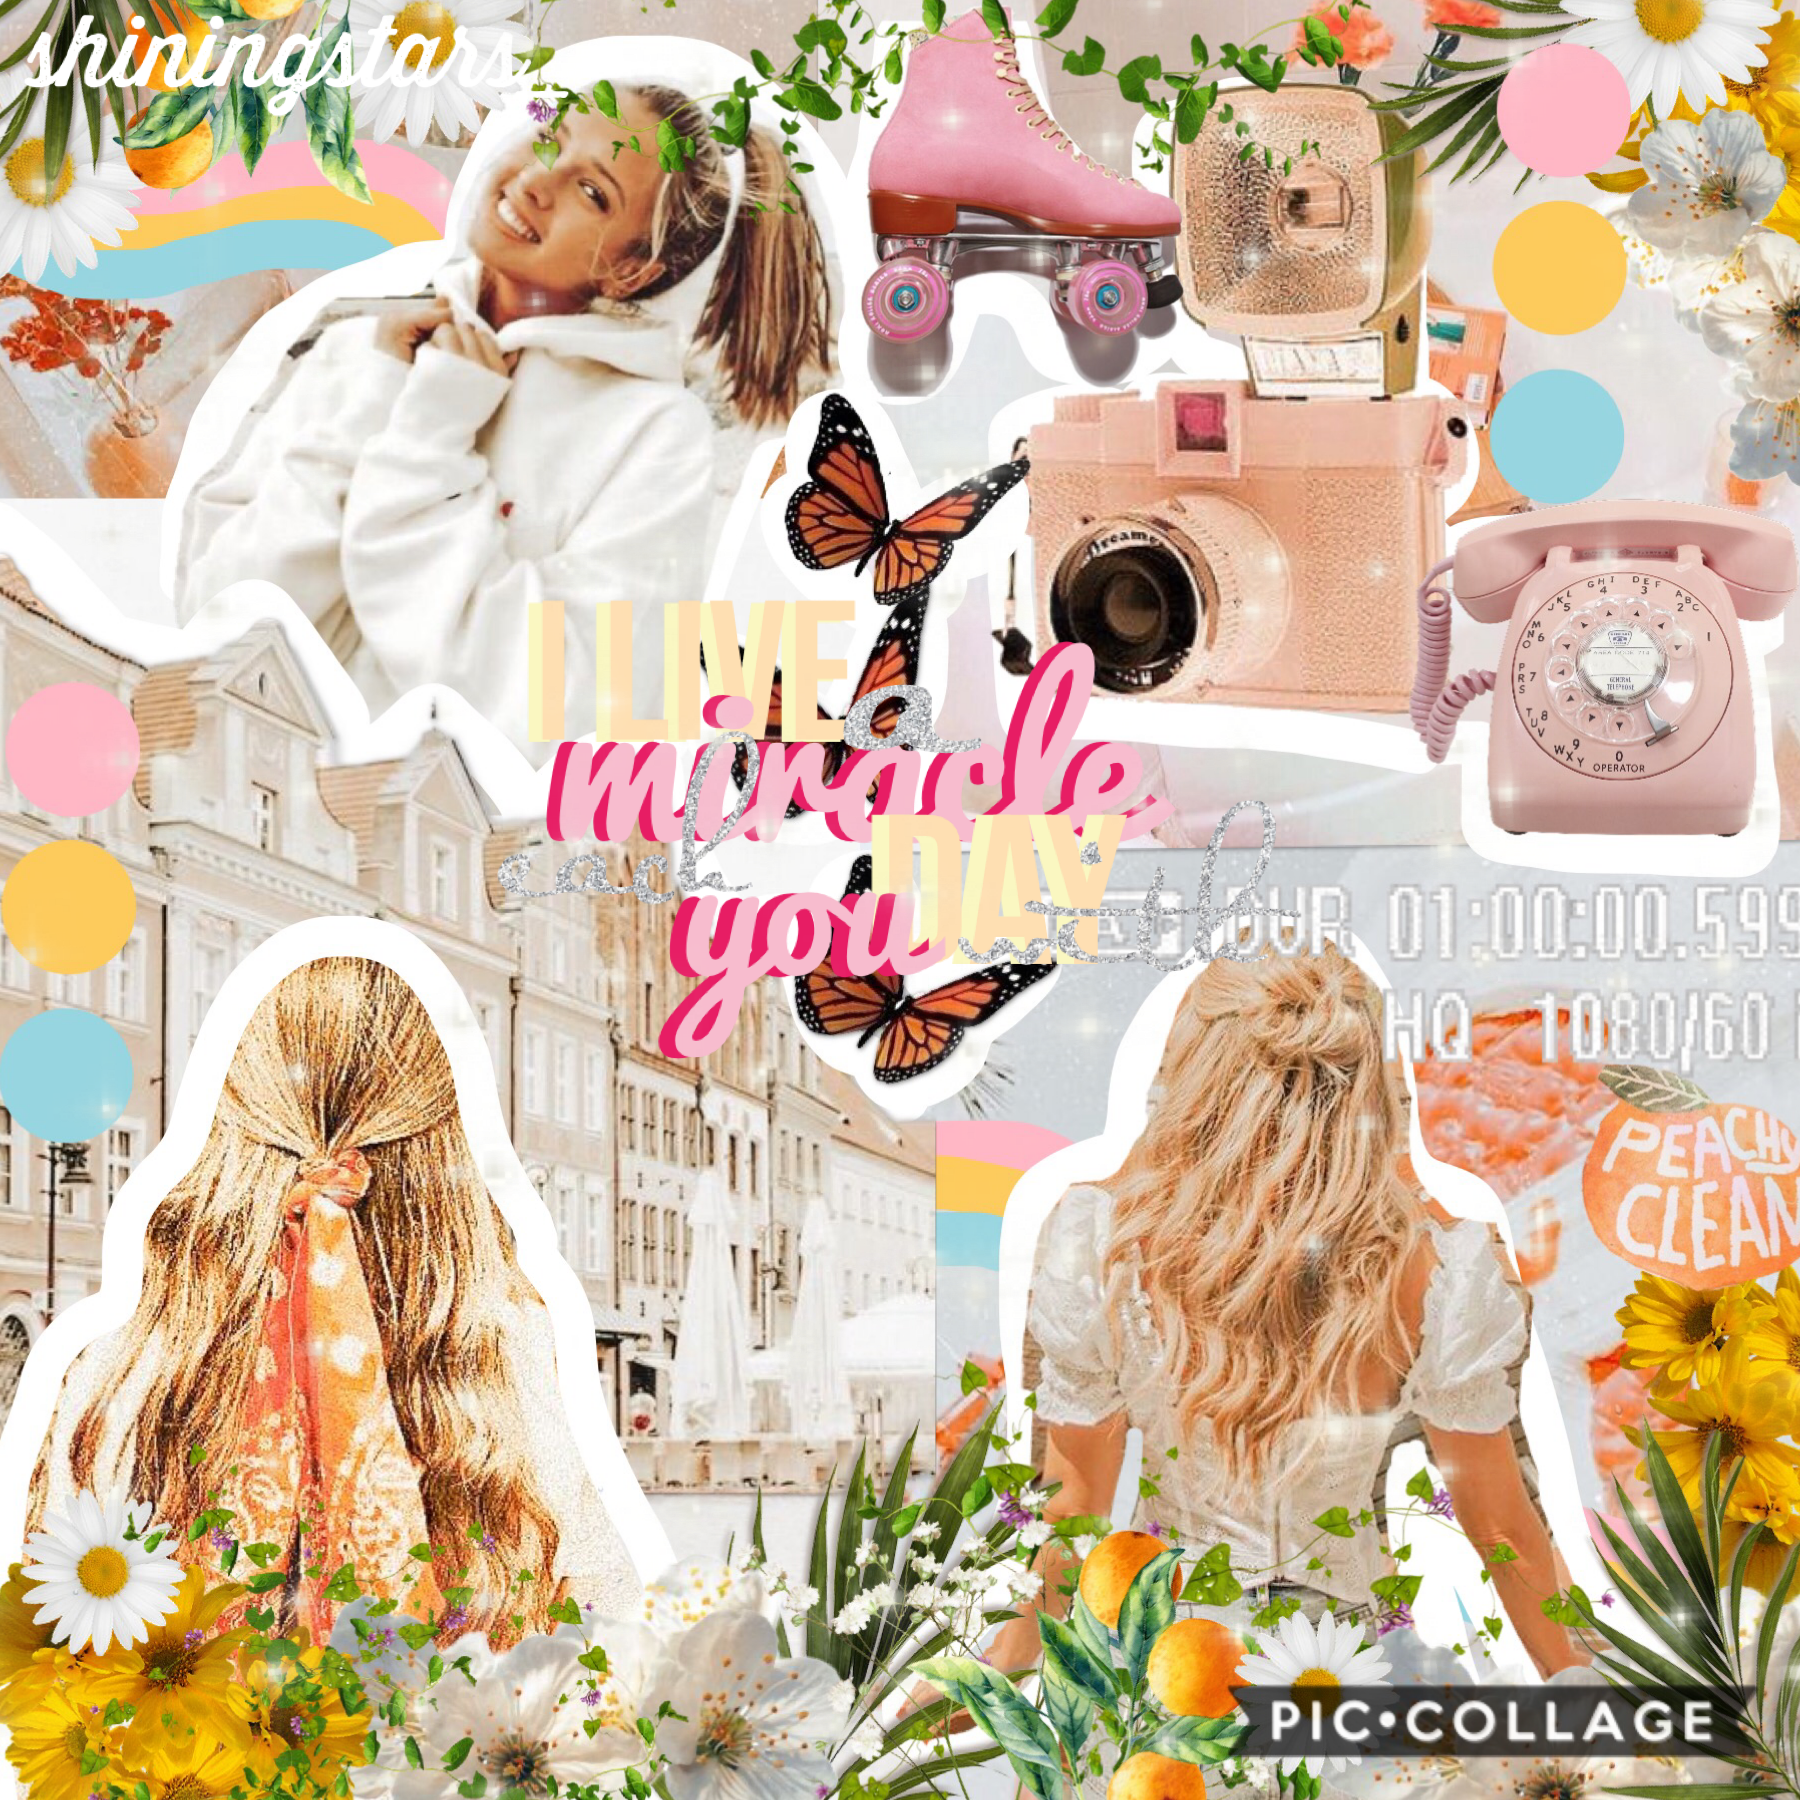 I made this long time ago tap! I made this but never posted it since I don't think it looks good. Please comment if u think it's good or not and this was inspired by @-sparklydiamonds- but I made it long time ago.......